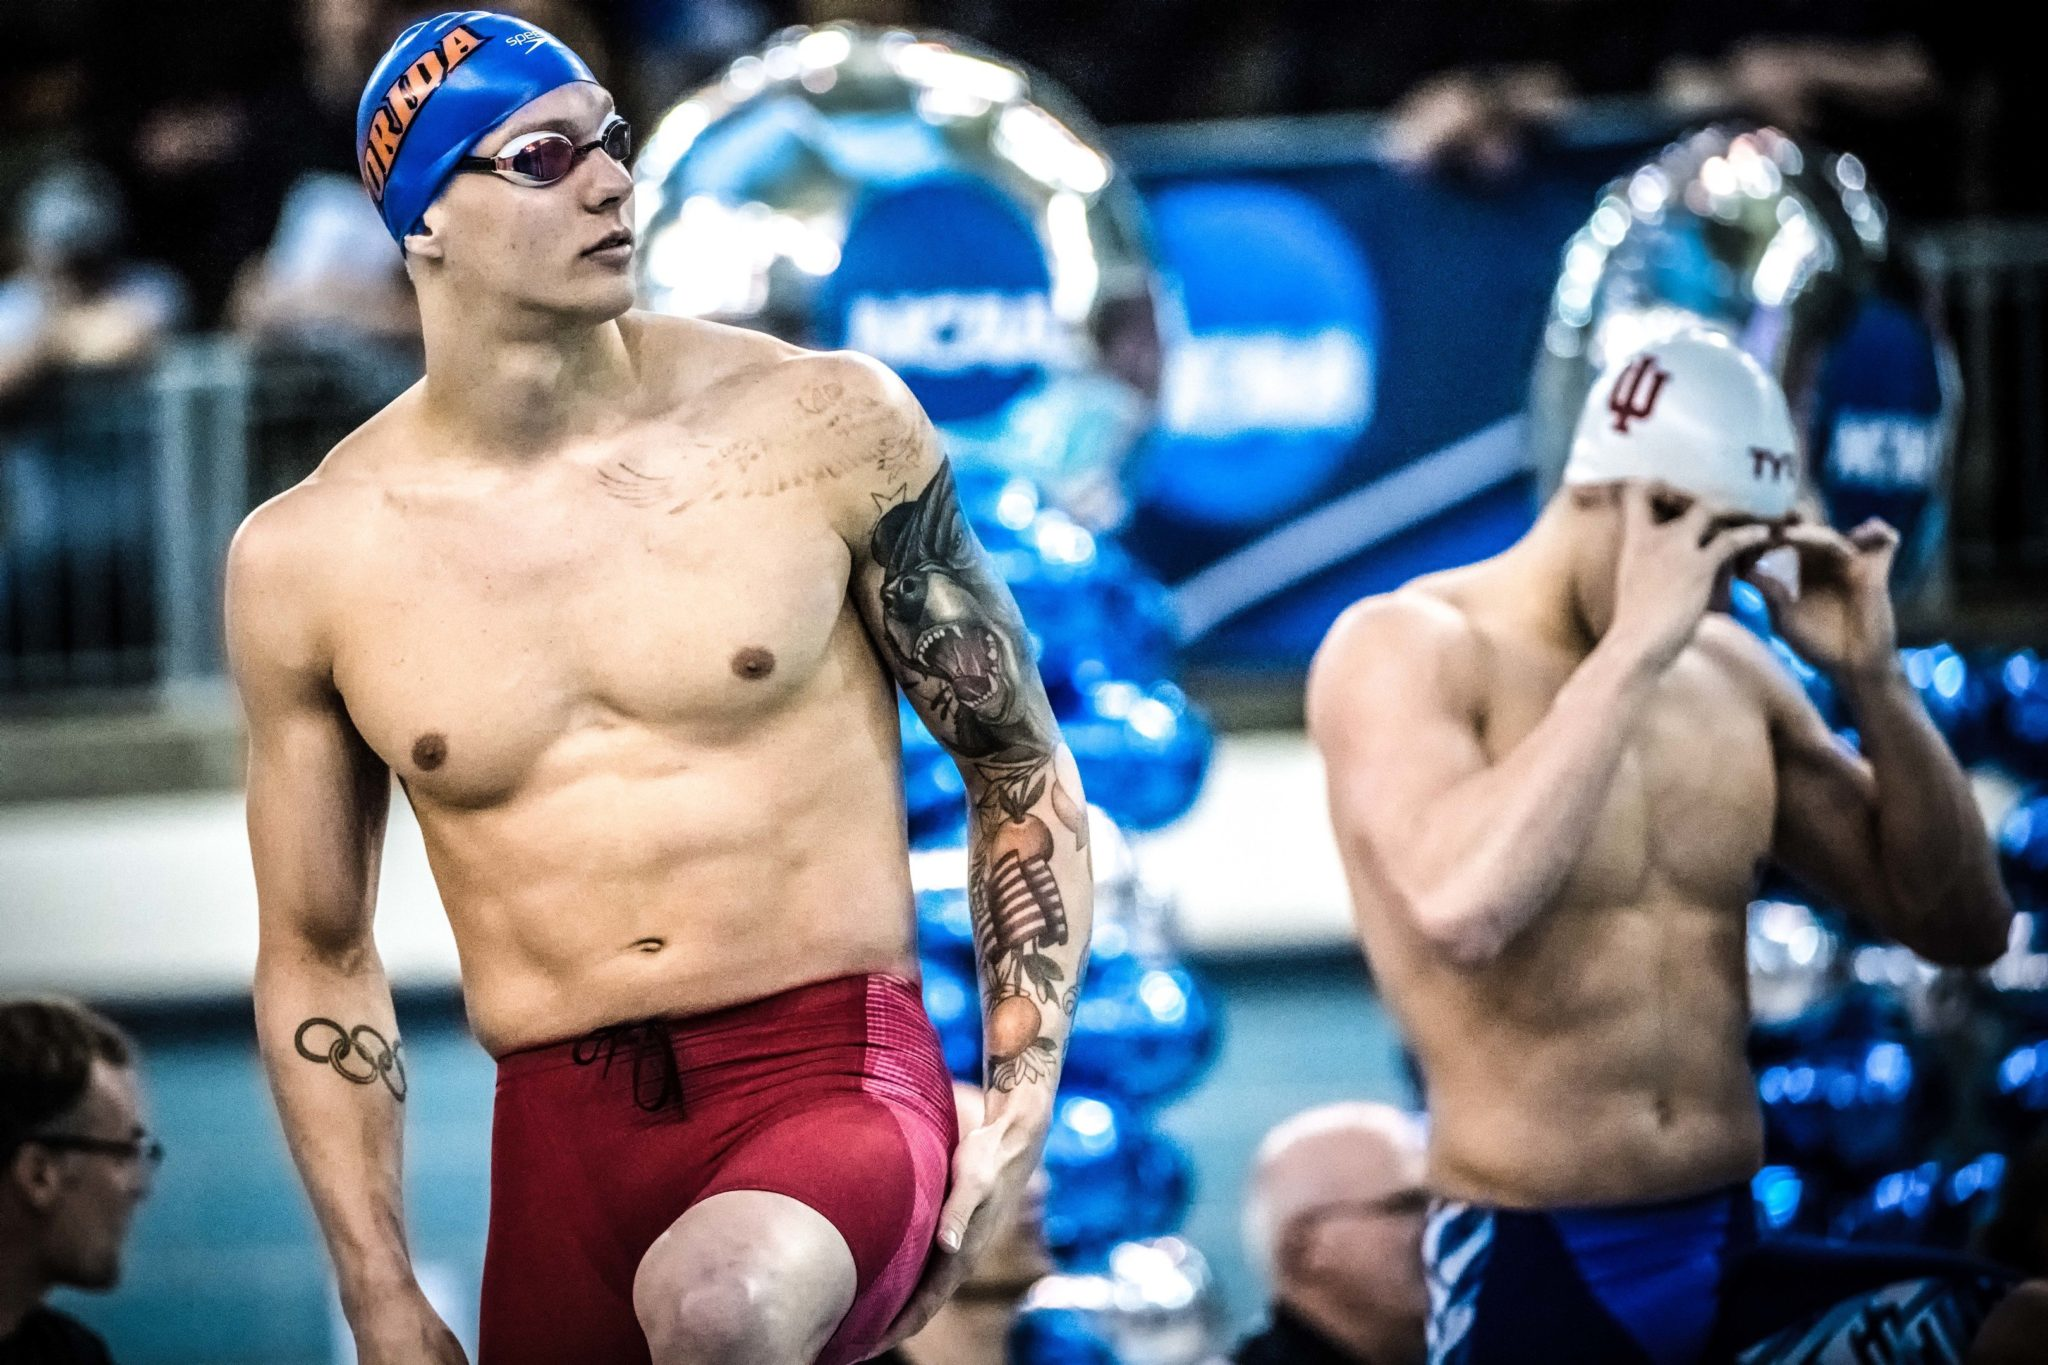 SURGE+: What can you learn from Caeleb Dressel